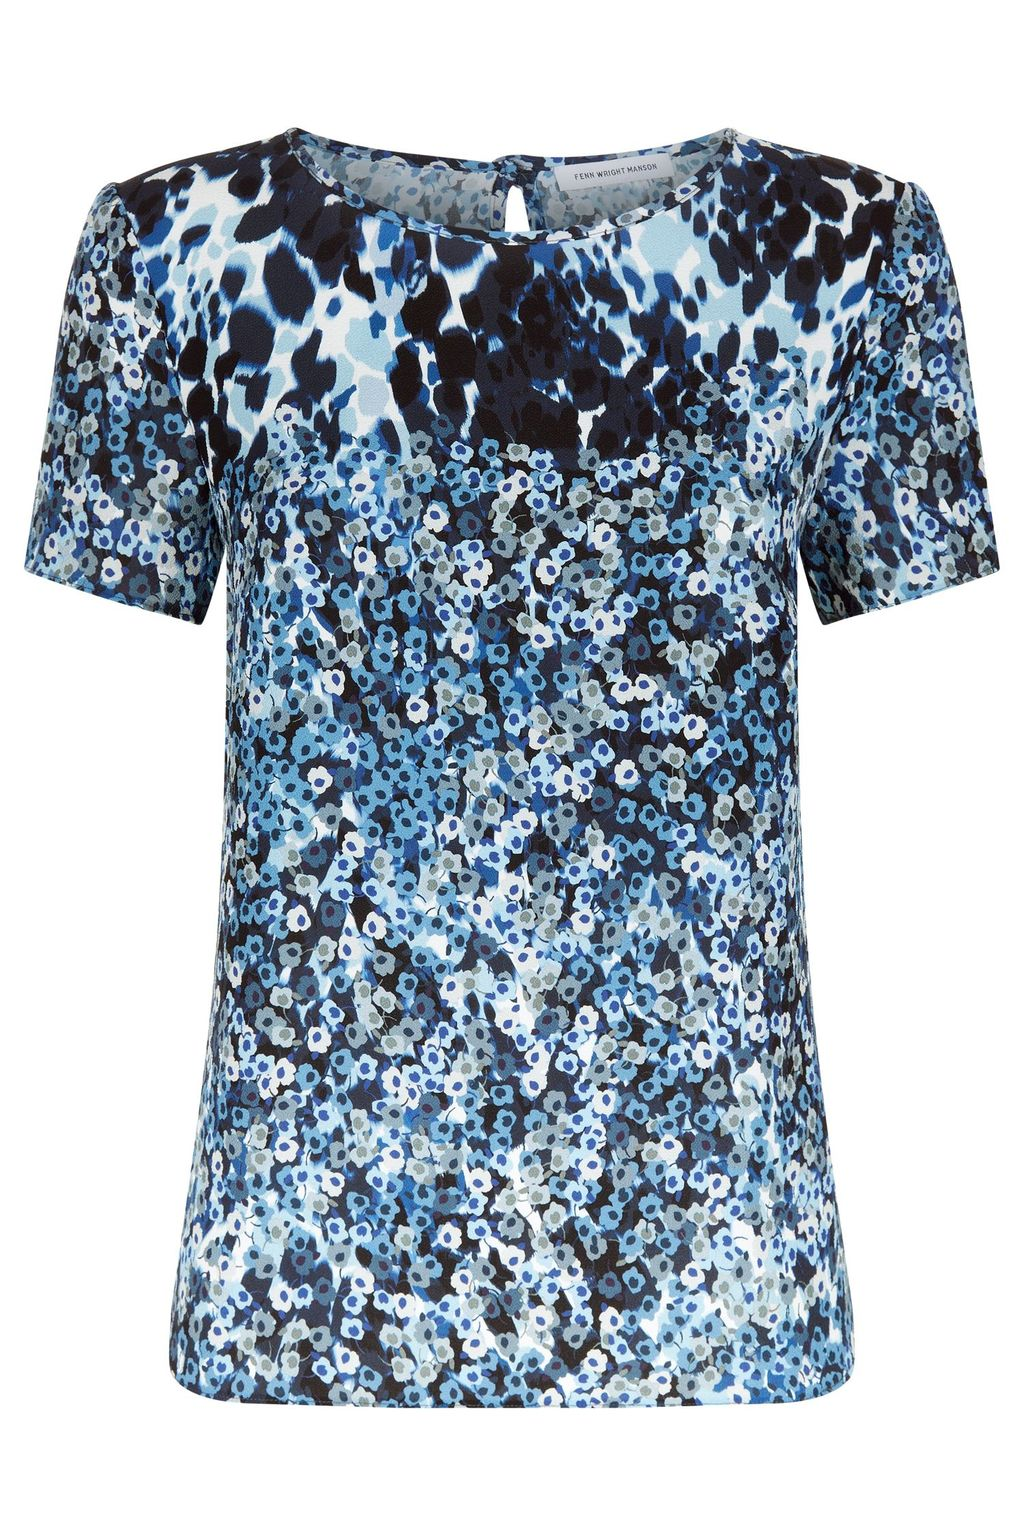 Cosmic Top, Blue Multi - neckline: round neck; predominant colour: pale blue; secondary colour: black; occasions: casual; length: standard; style: top; fibres: polyester/polyamide - stretch; fit: body skimming; sleeve length: short sleeve; sleeve style: standard; pattern type: fabric; pattern: animal print; texture group: jersey - stretchy/drapey; pattern size: big & busy (top); multicoloured: multicoloured; season: s/s 2016